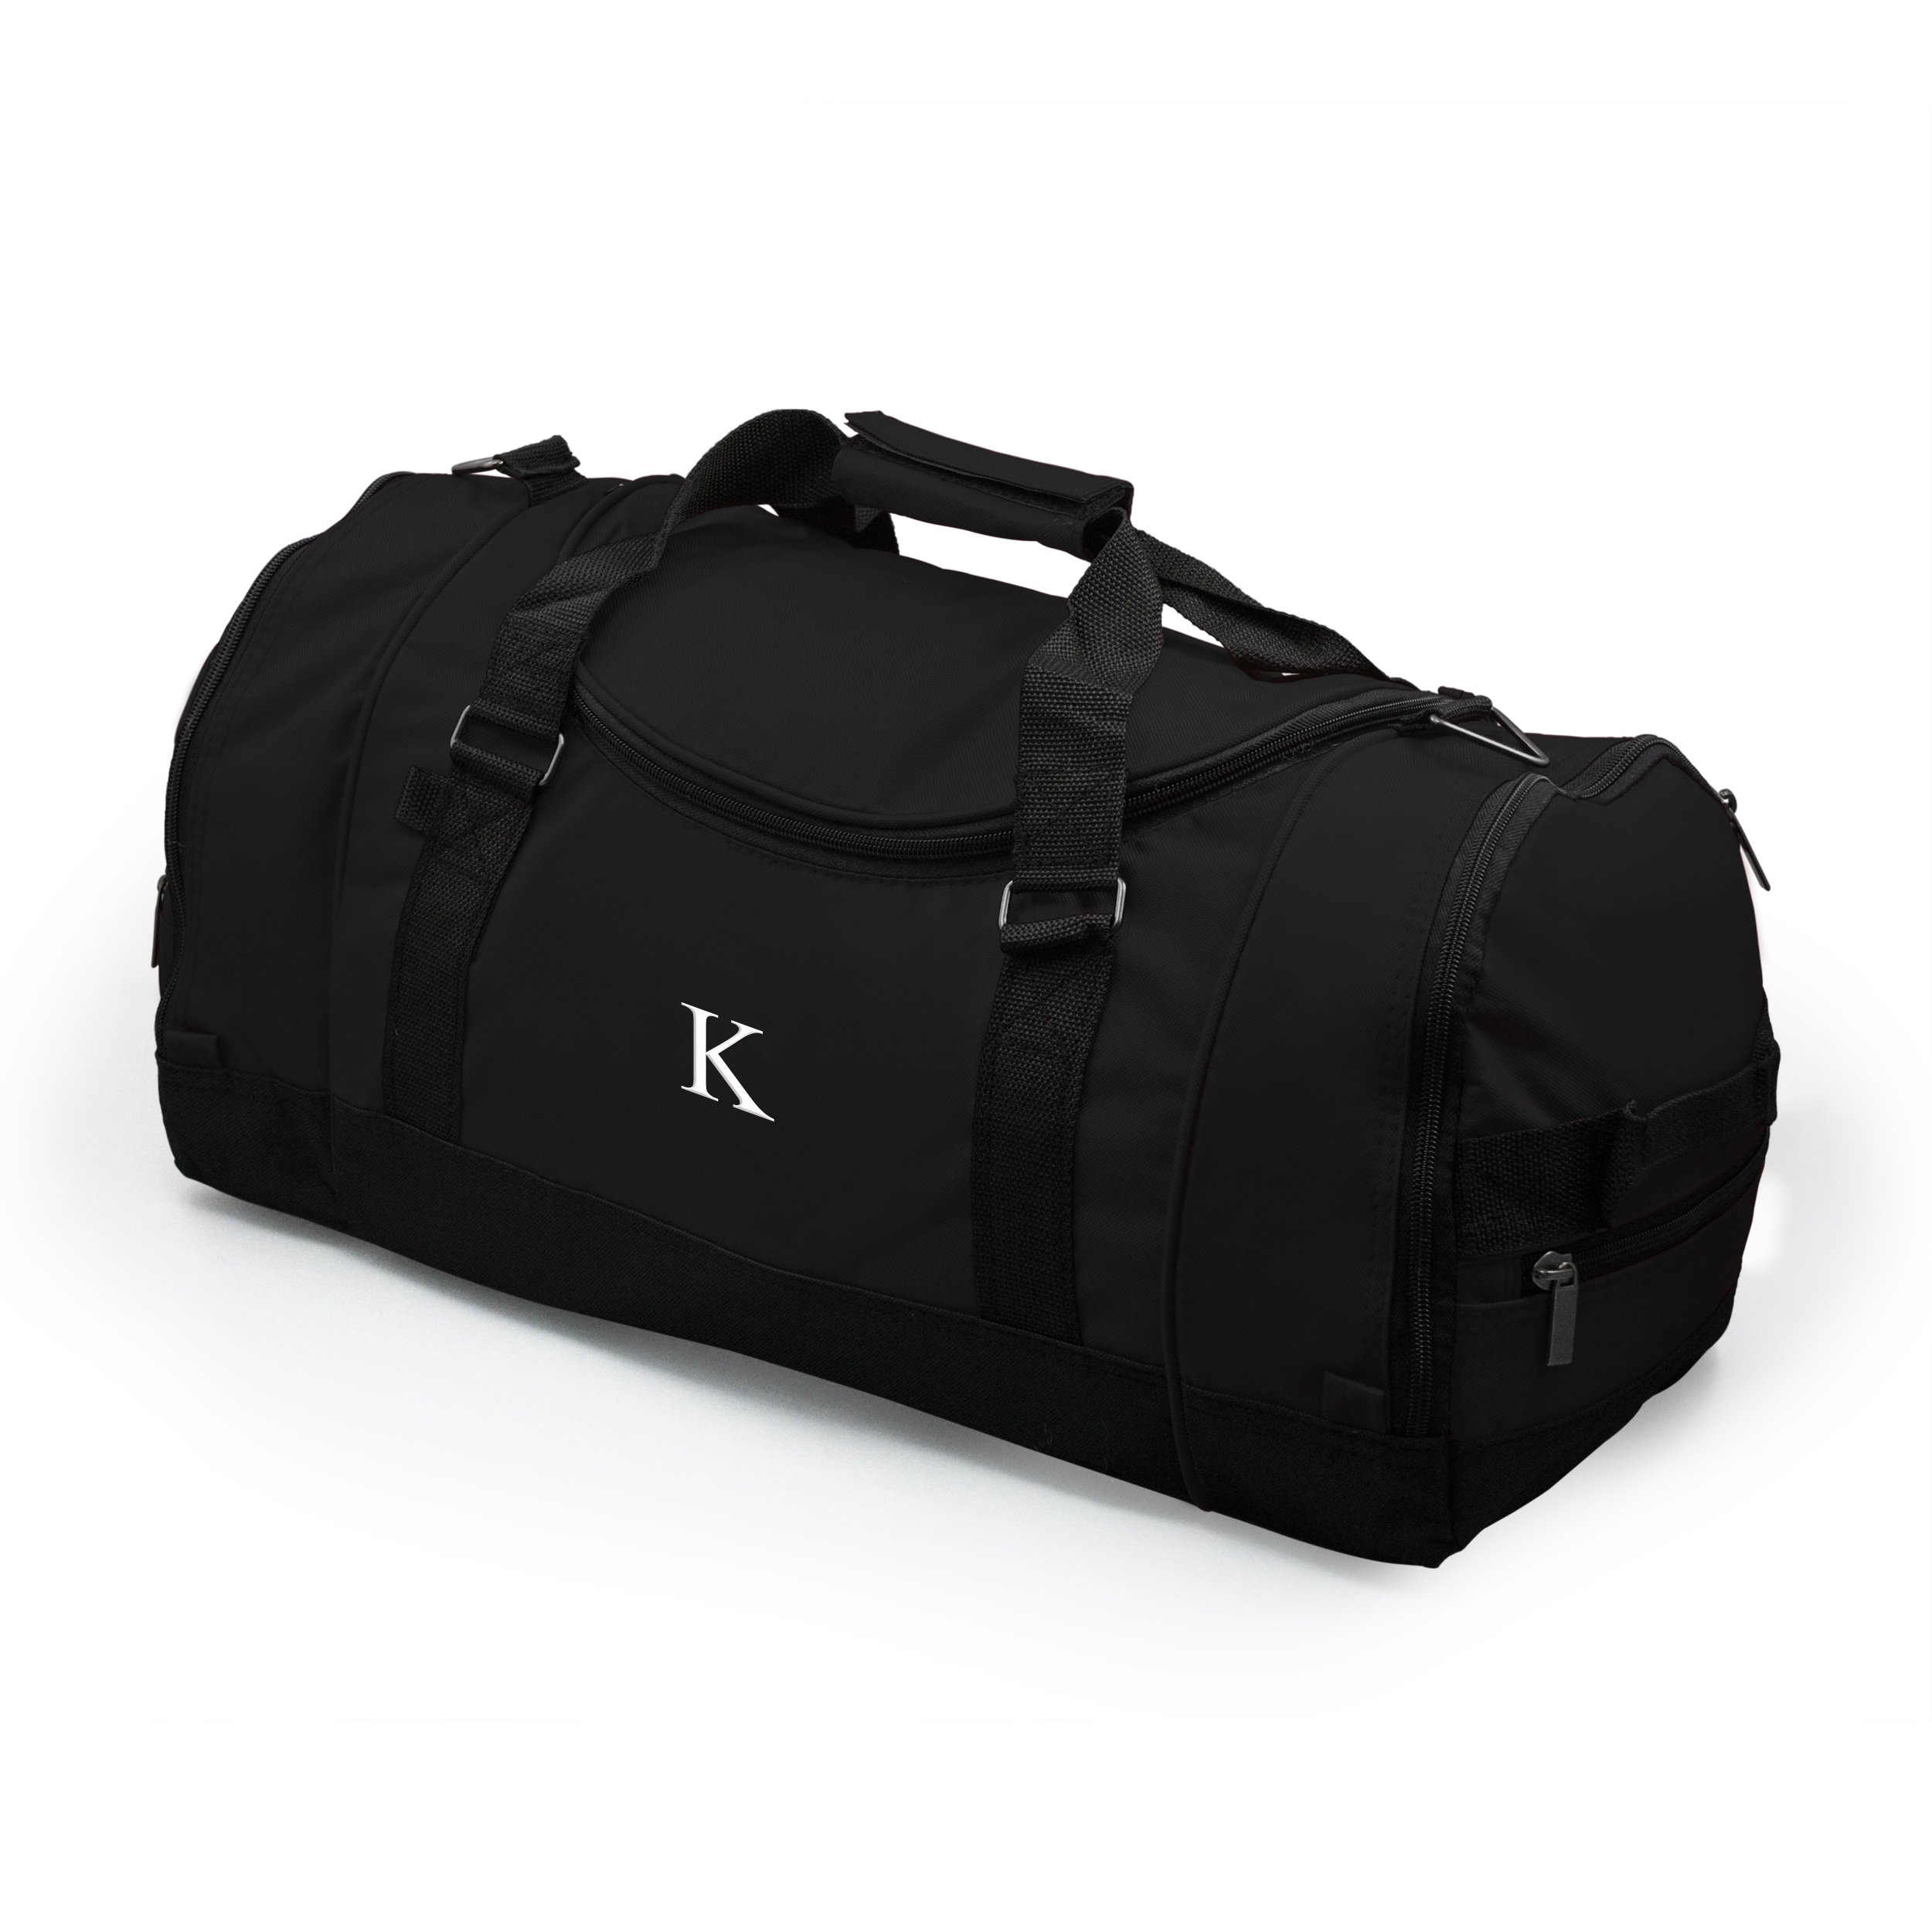 Personalized Deluxe Sports Duffle Bag, Monogrammed Letter K, Black